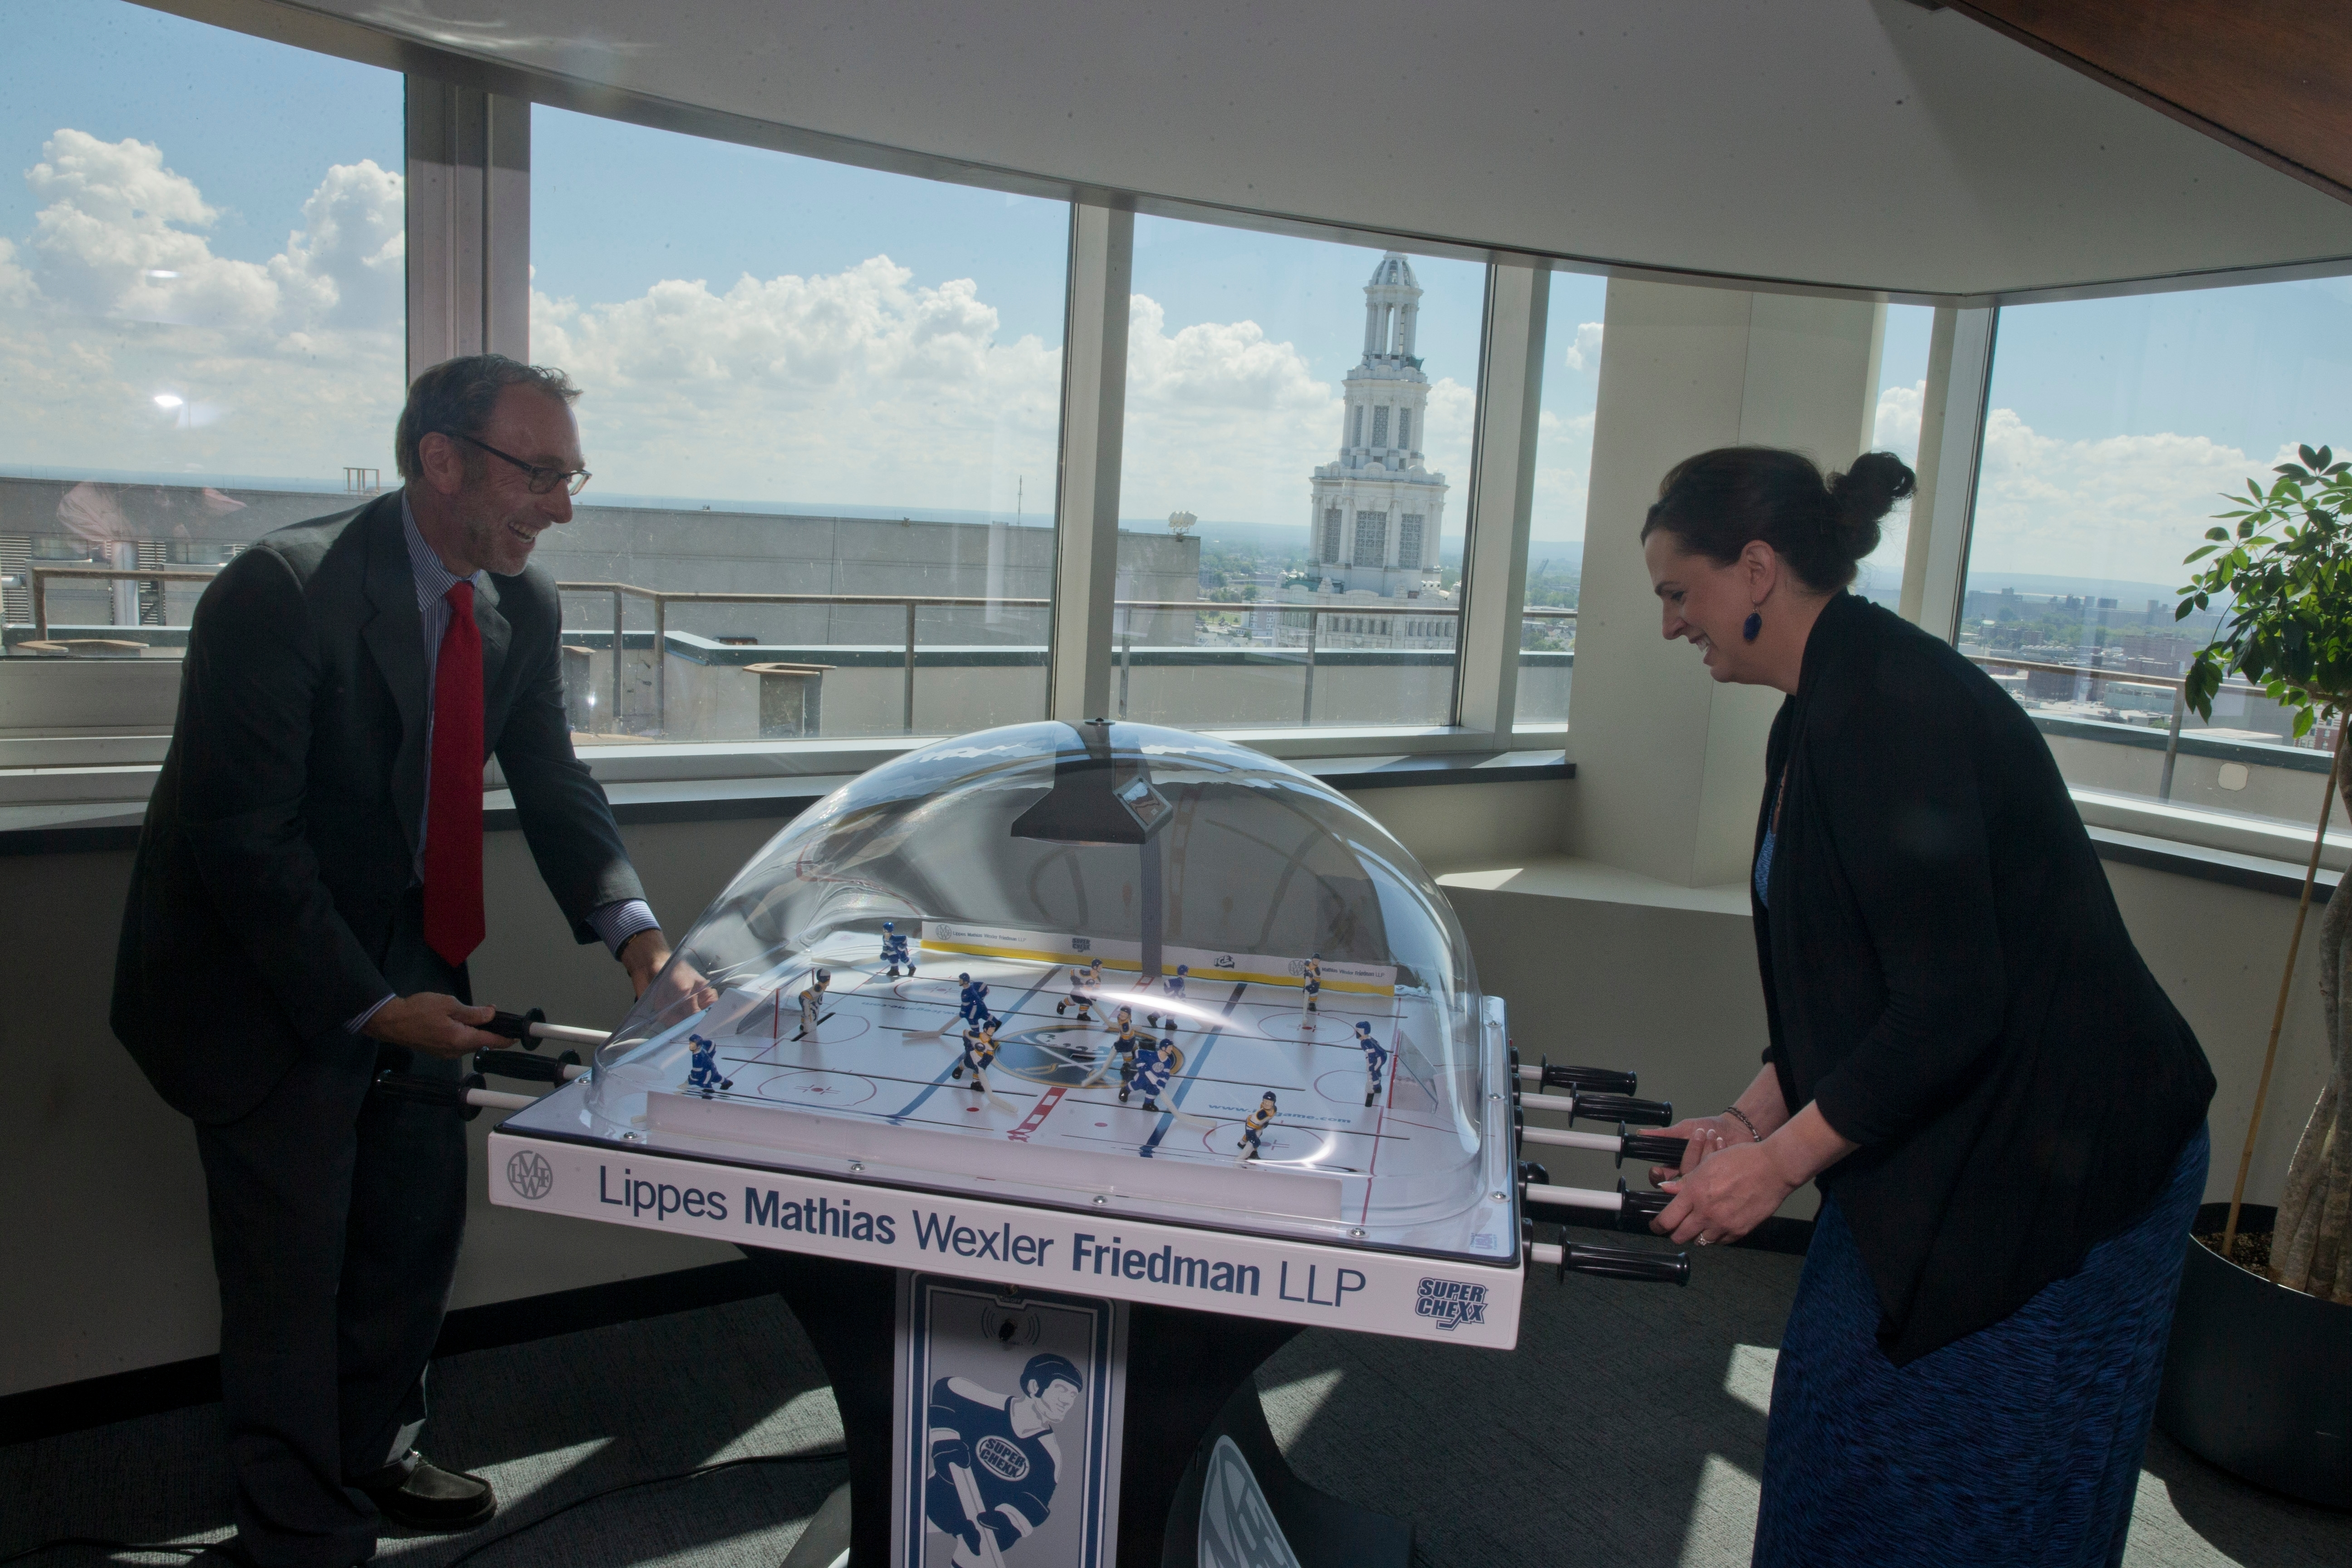 """The work I do is what can be done to reinforce trust, to focus on culture, to focus on clear principles and principle-based decisions. To focus on communications guidelines."" – Scott E. Friedman, chairman and CEO of Lippes Mathias Wexler Friedman, here playing bubble hockey with Colleen K. Mattrey, a partner in the law firm, at the Fountain Plaza offices downtown. (John Hickey/Buffalo News)"